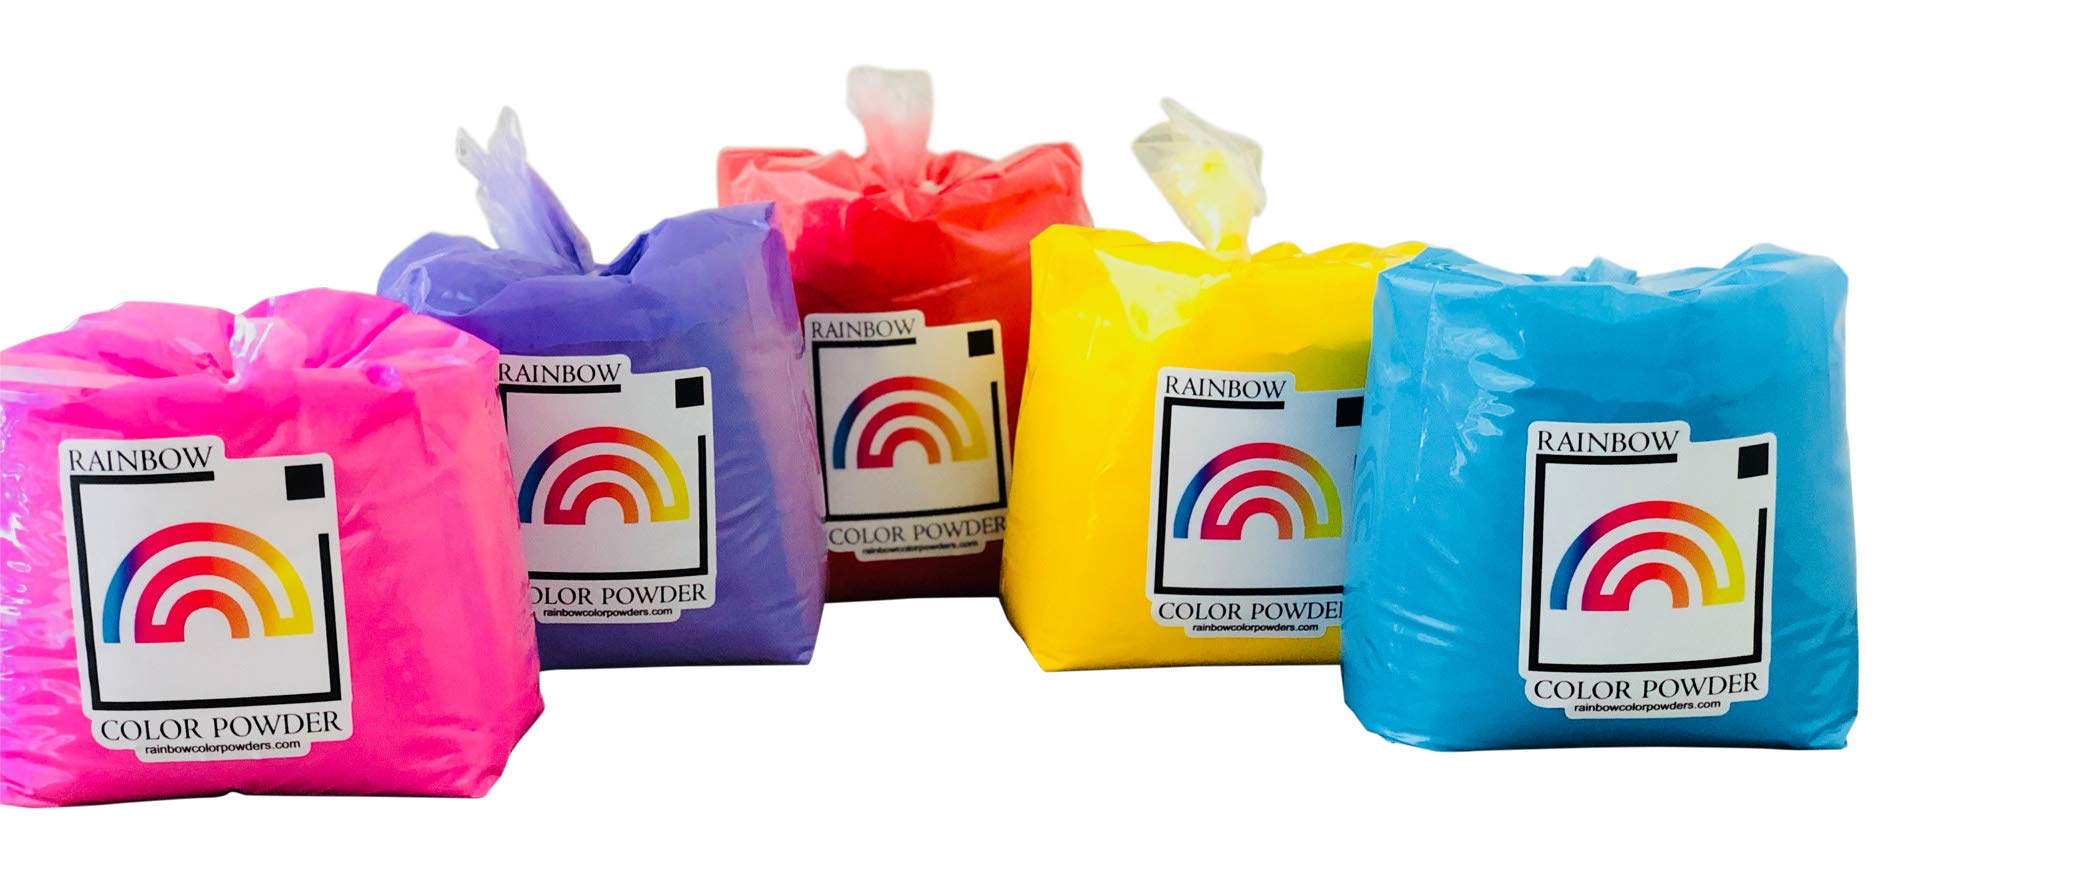 25lbs of 5 Colors (Assorted) by Rainbow Color Powders